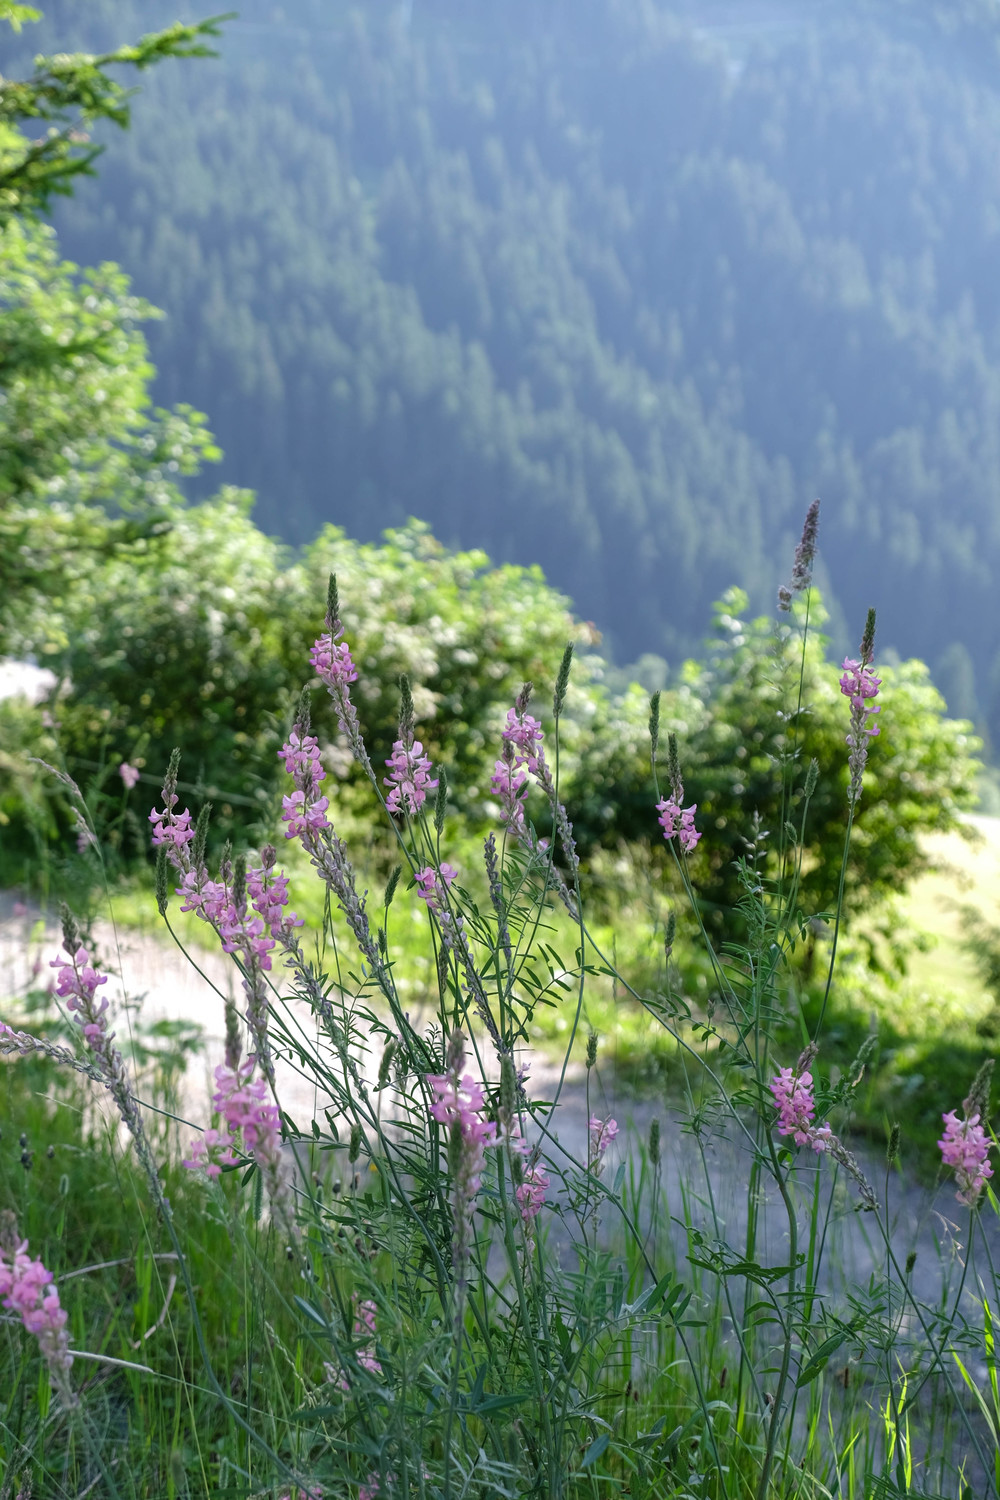 LaurenSchwaiger-Travel-Blog-Austria-Kitzbuhel-Alps-Flowers.jpg